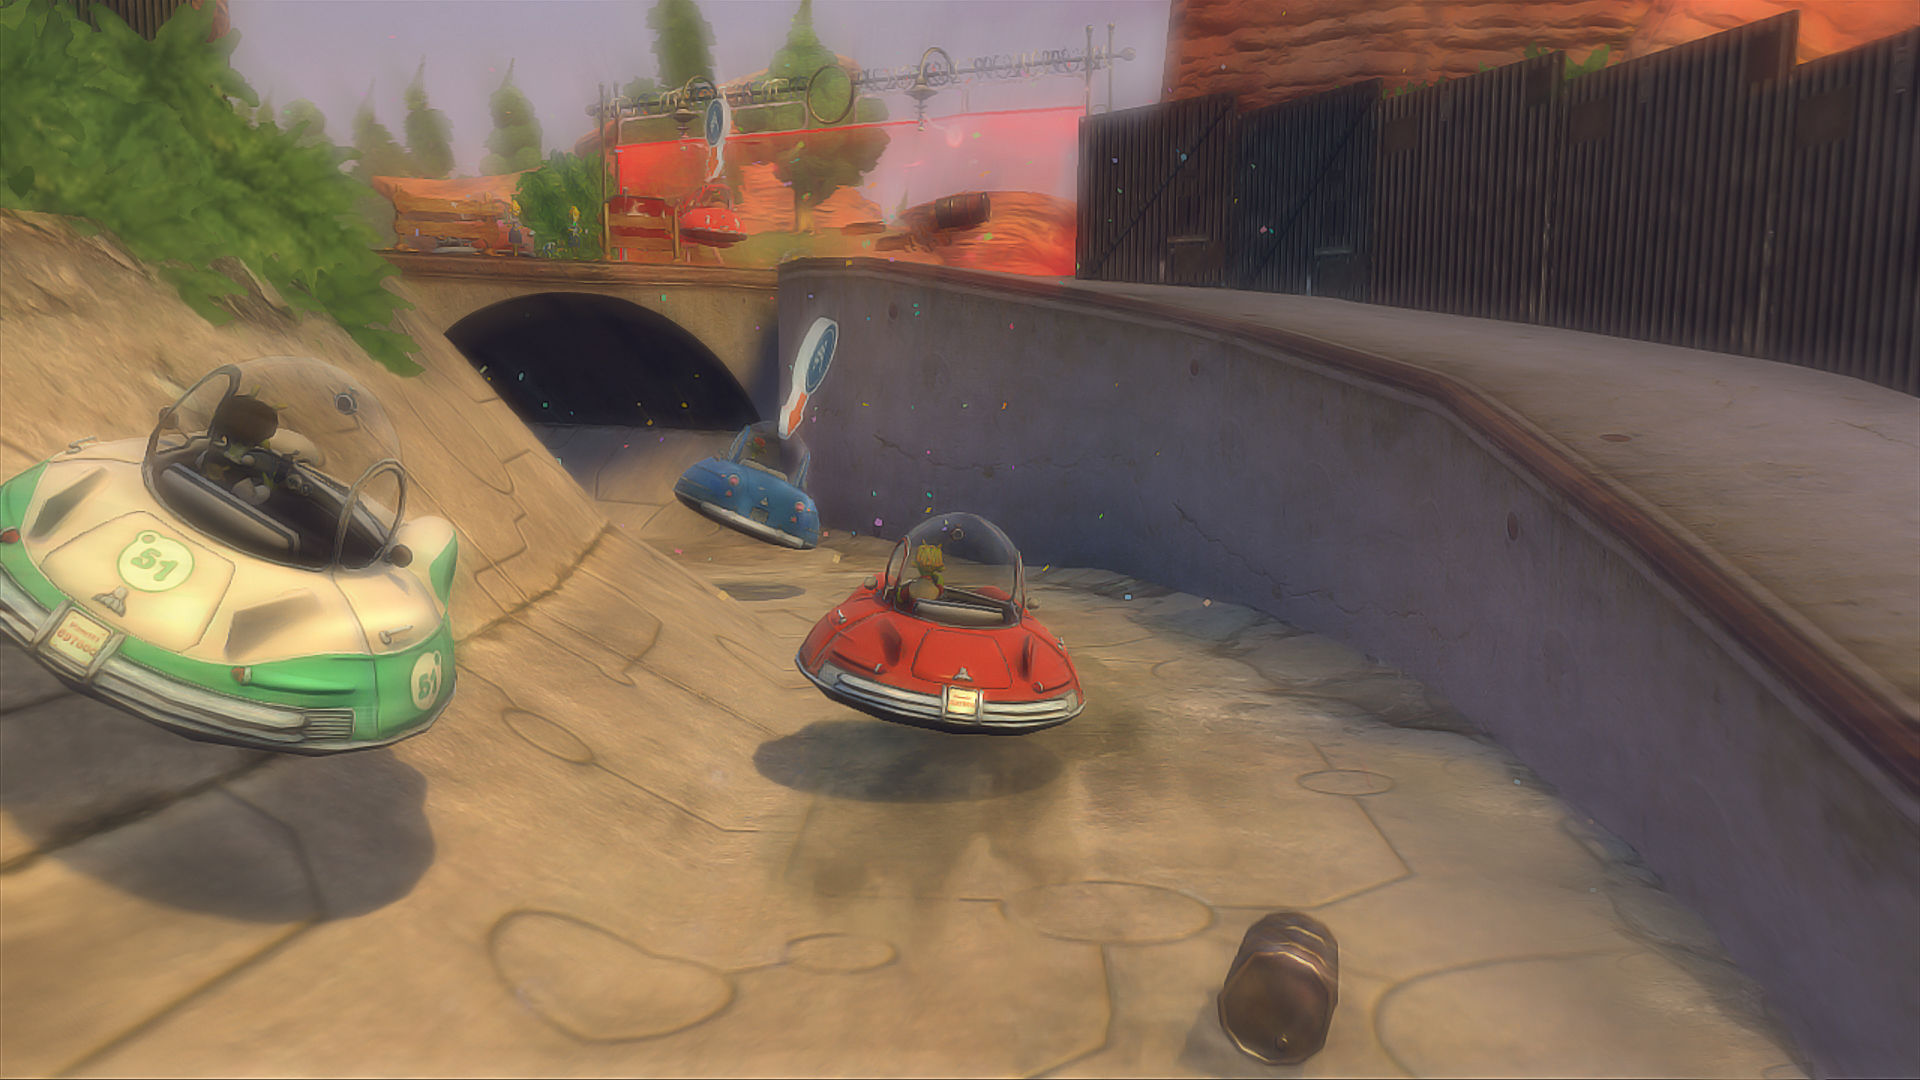 Planet 51: The Game Xbox 360 Racing in the canals